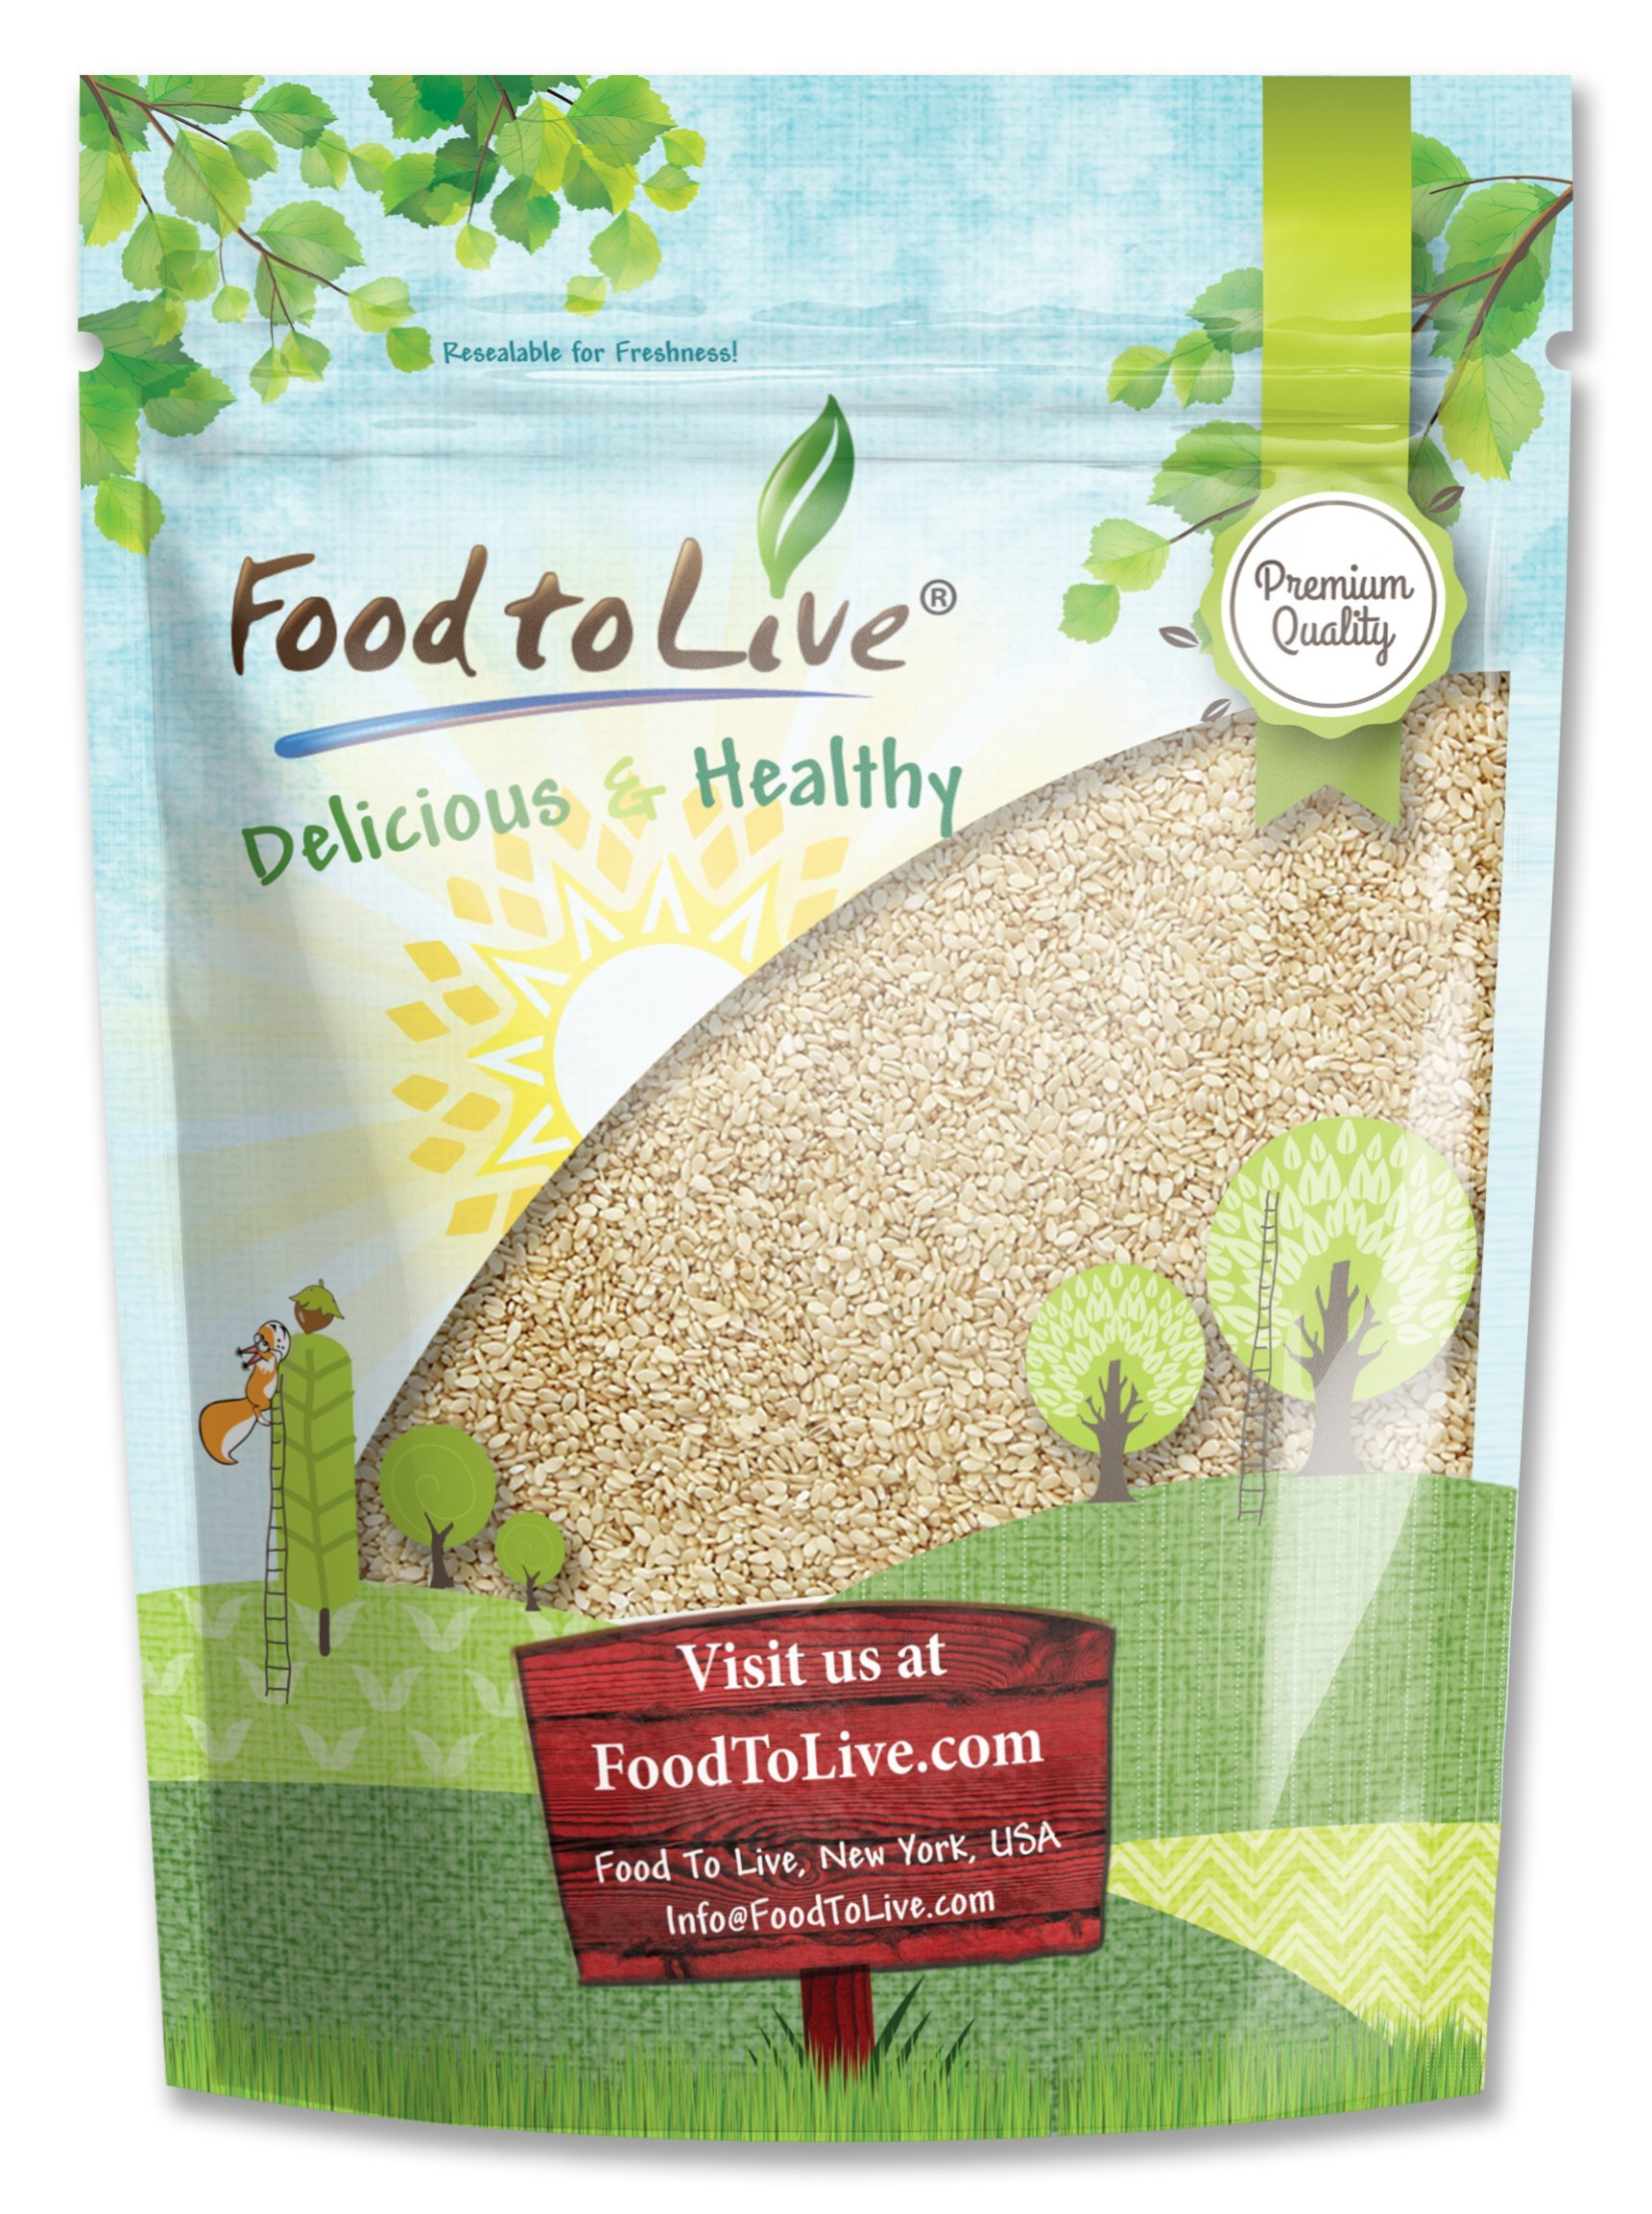 Sesame Seeds, 2 Pounds - Hulled, Kosher by Food to Live